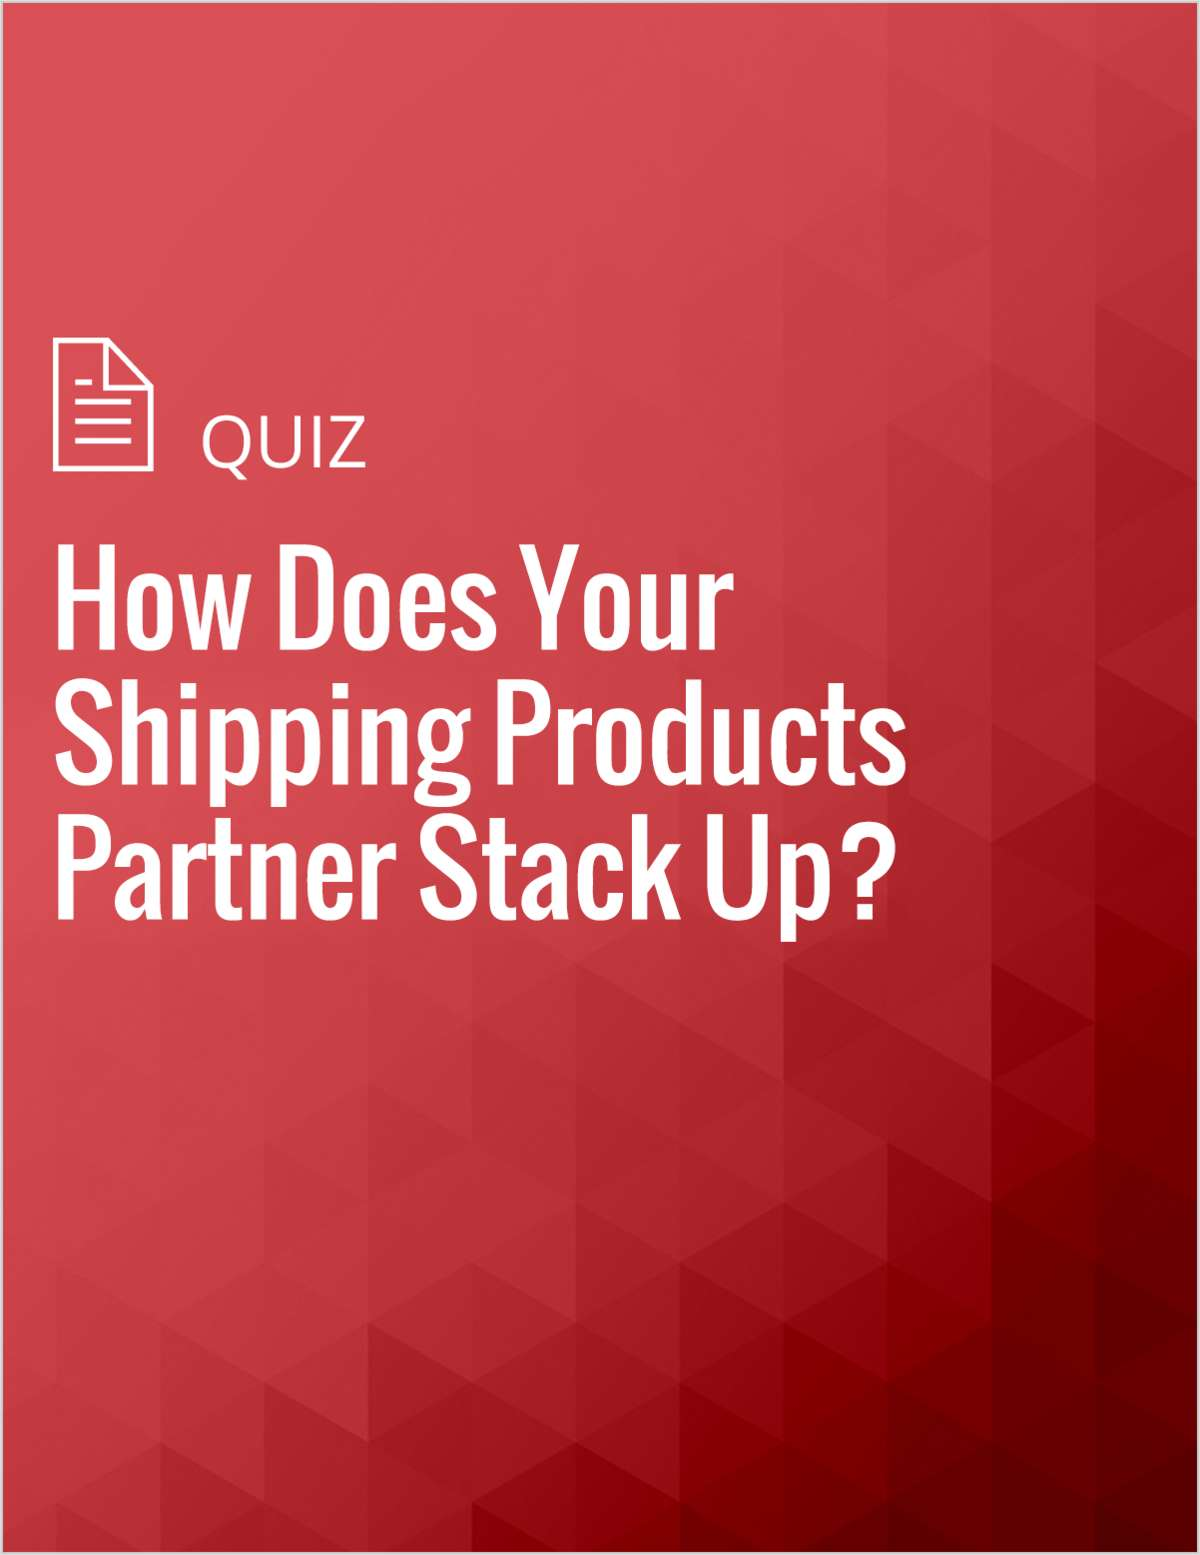 How Does Your Shipping Products Partner Stack Up?